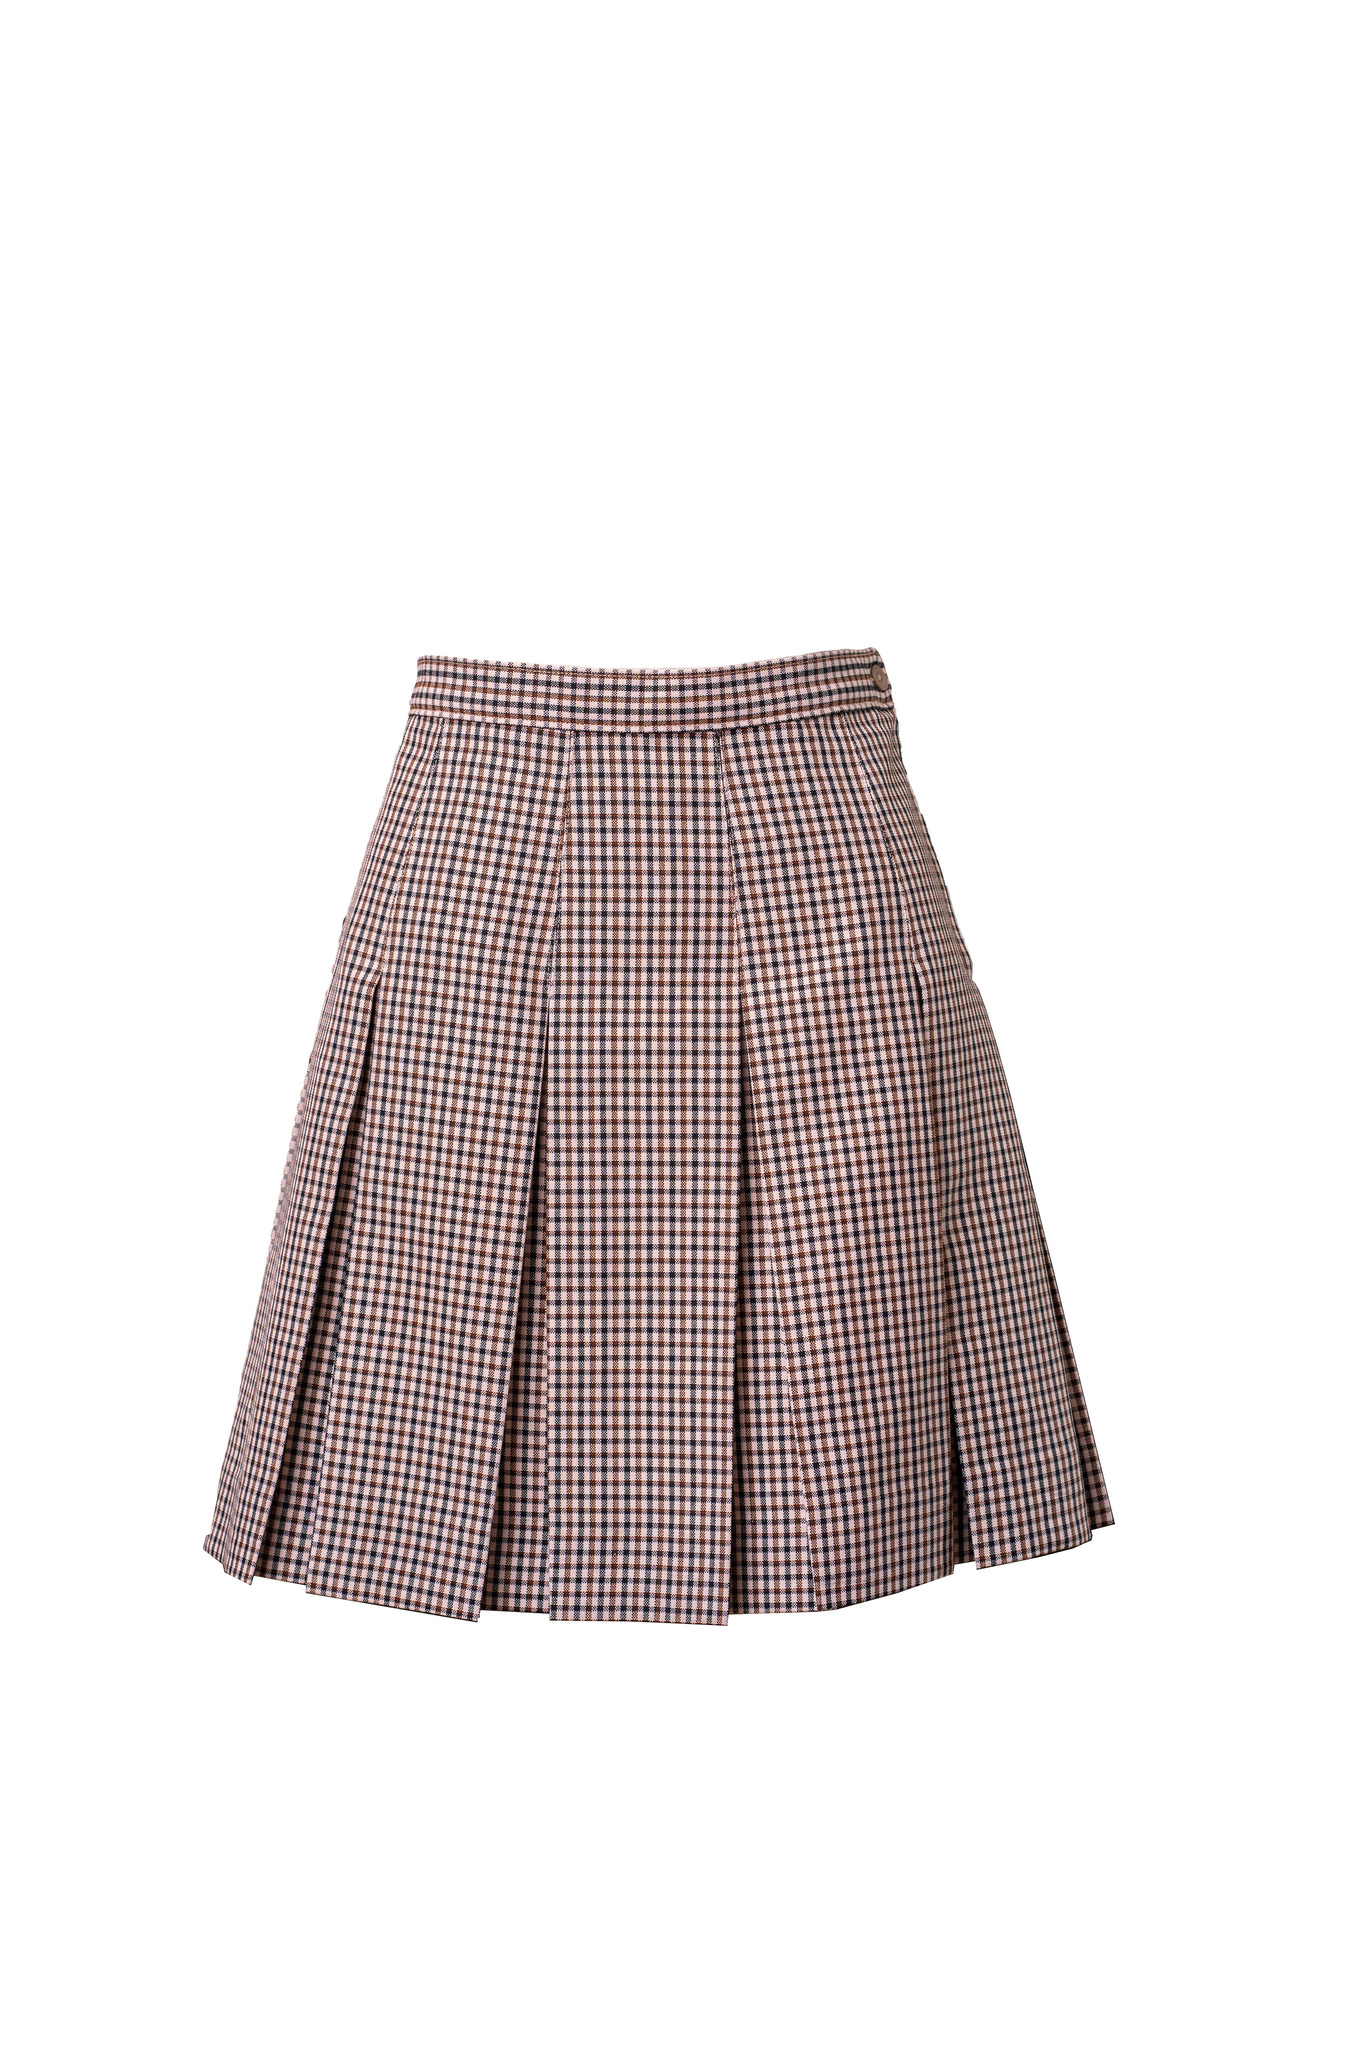 St. Therese Carmelite Skirt